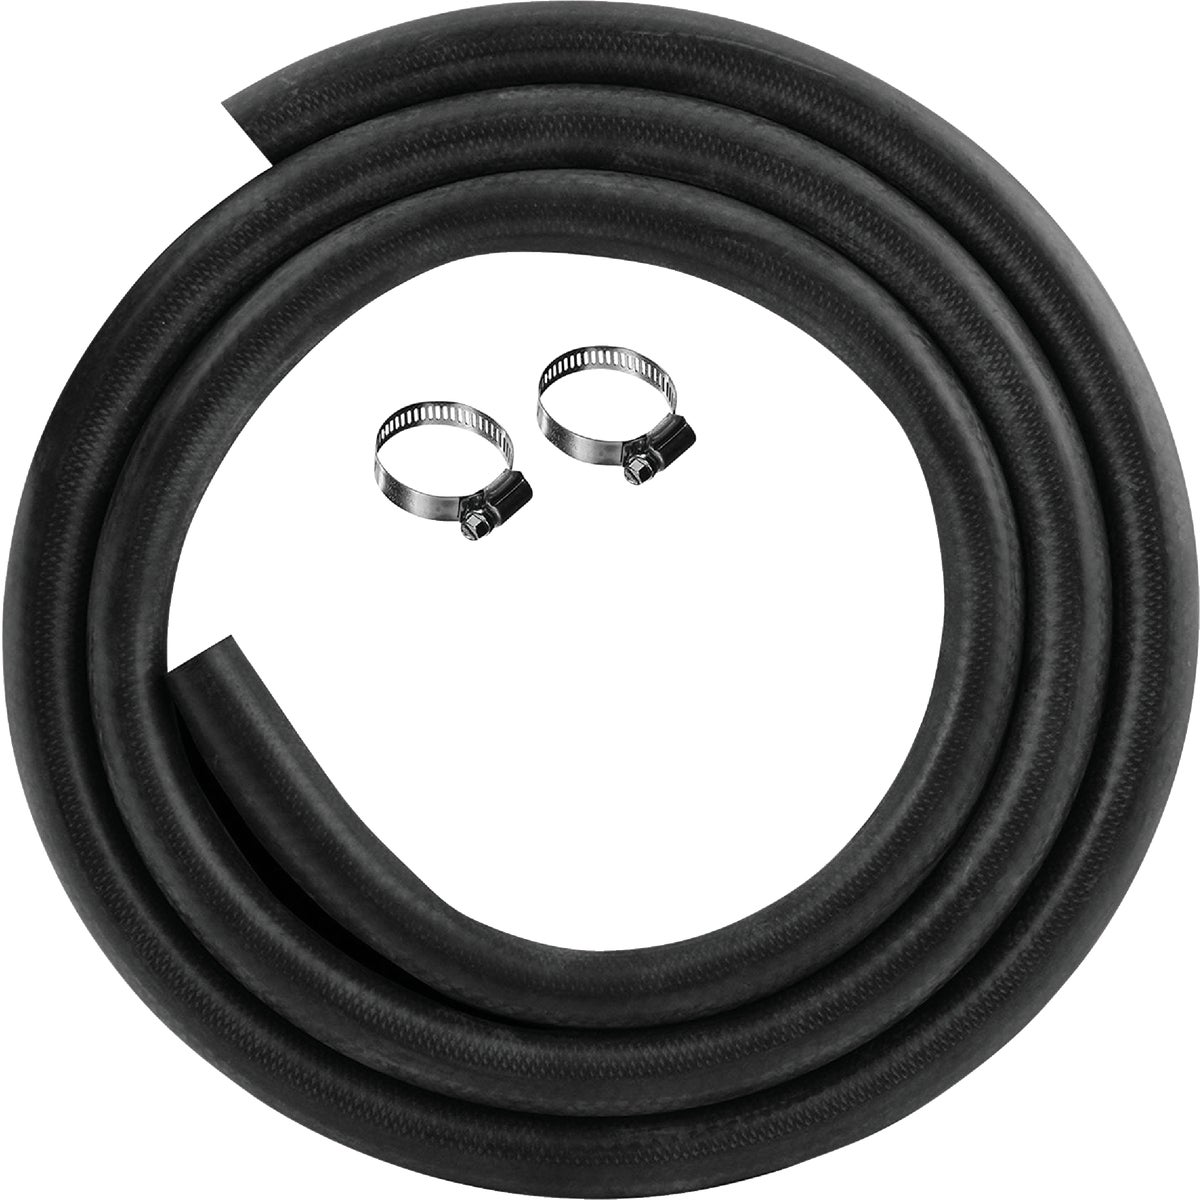 DISHWASHER DRAIN HOSE - 441929 by Wm H Harvey Co